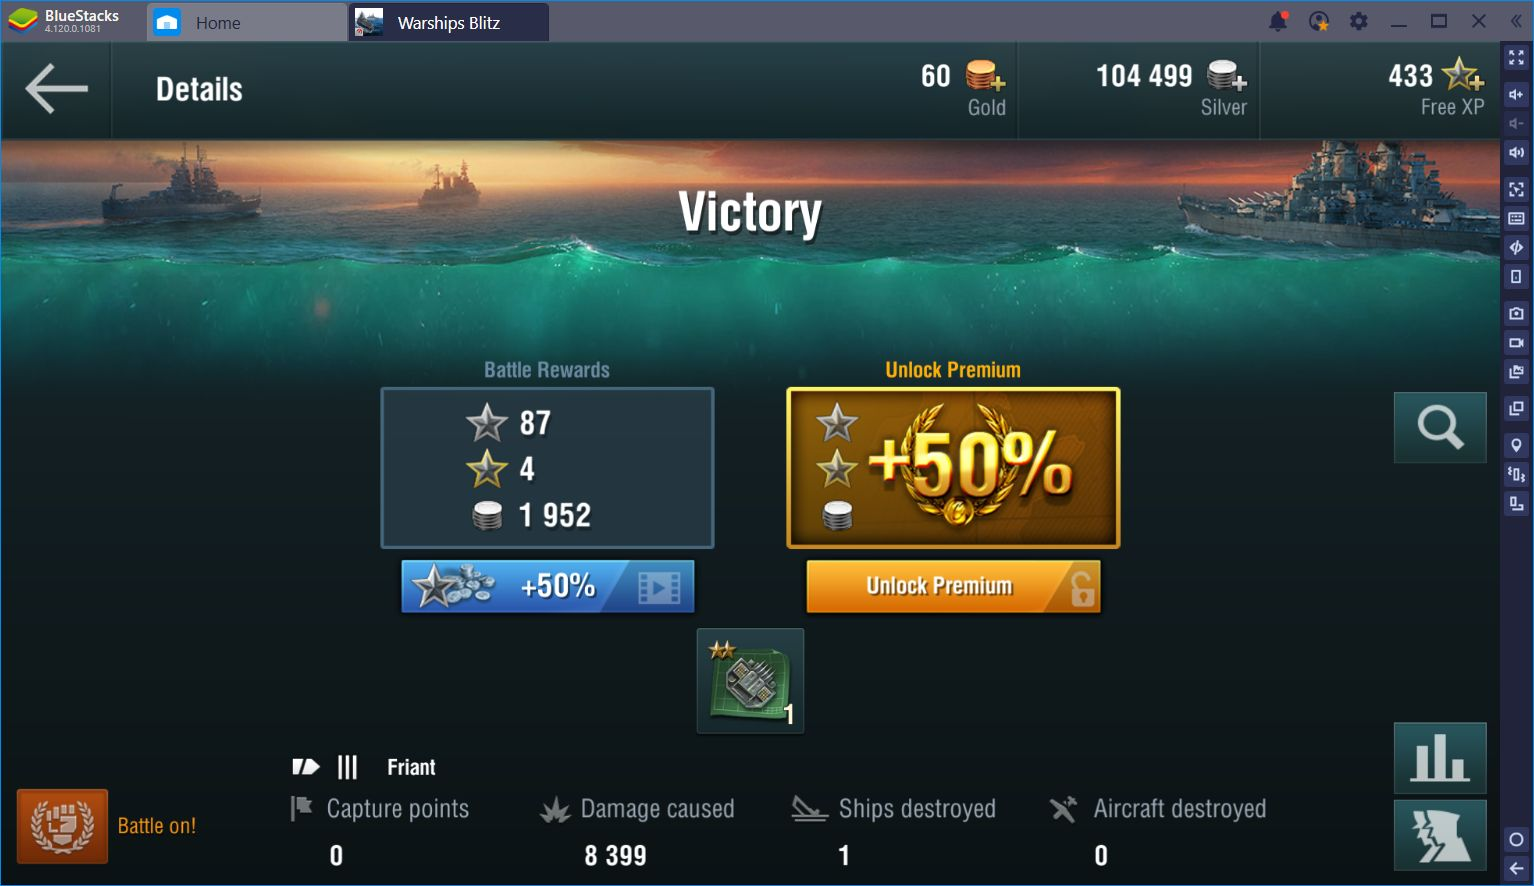 The Basics of Naval Combat in World of Warships Blitz